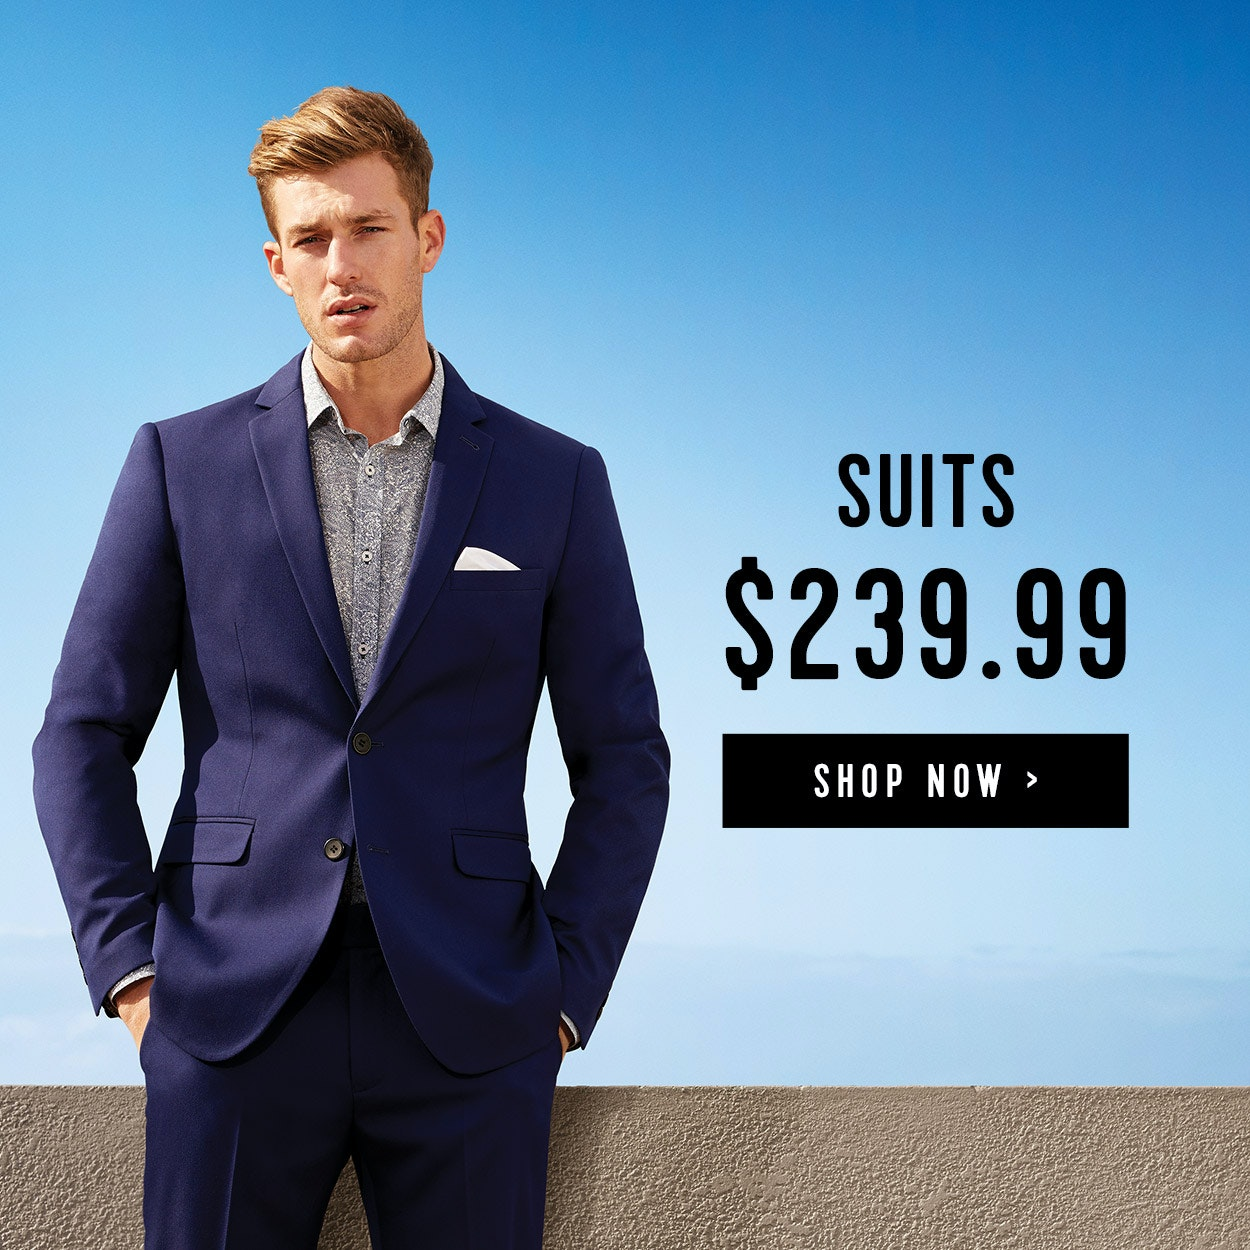 Suits from $239.99